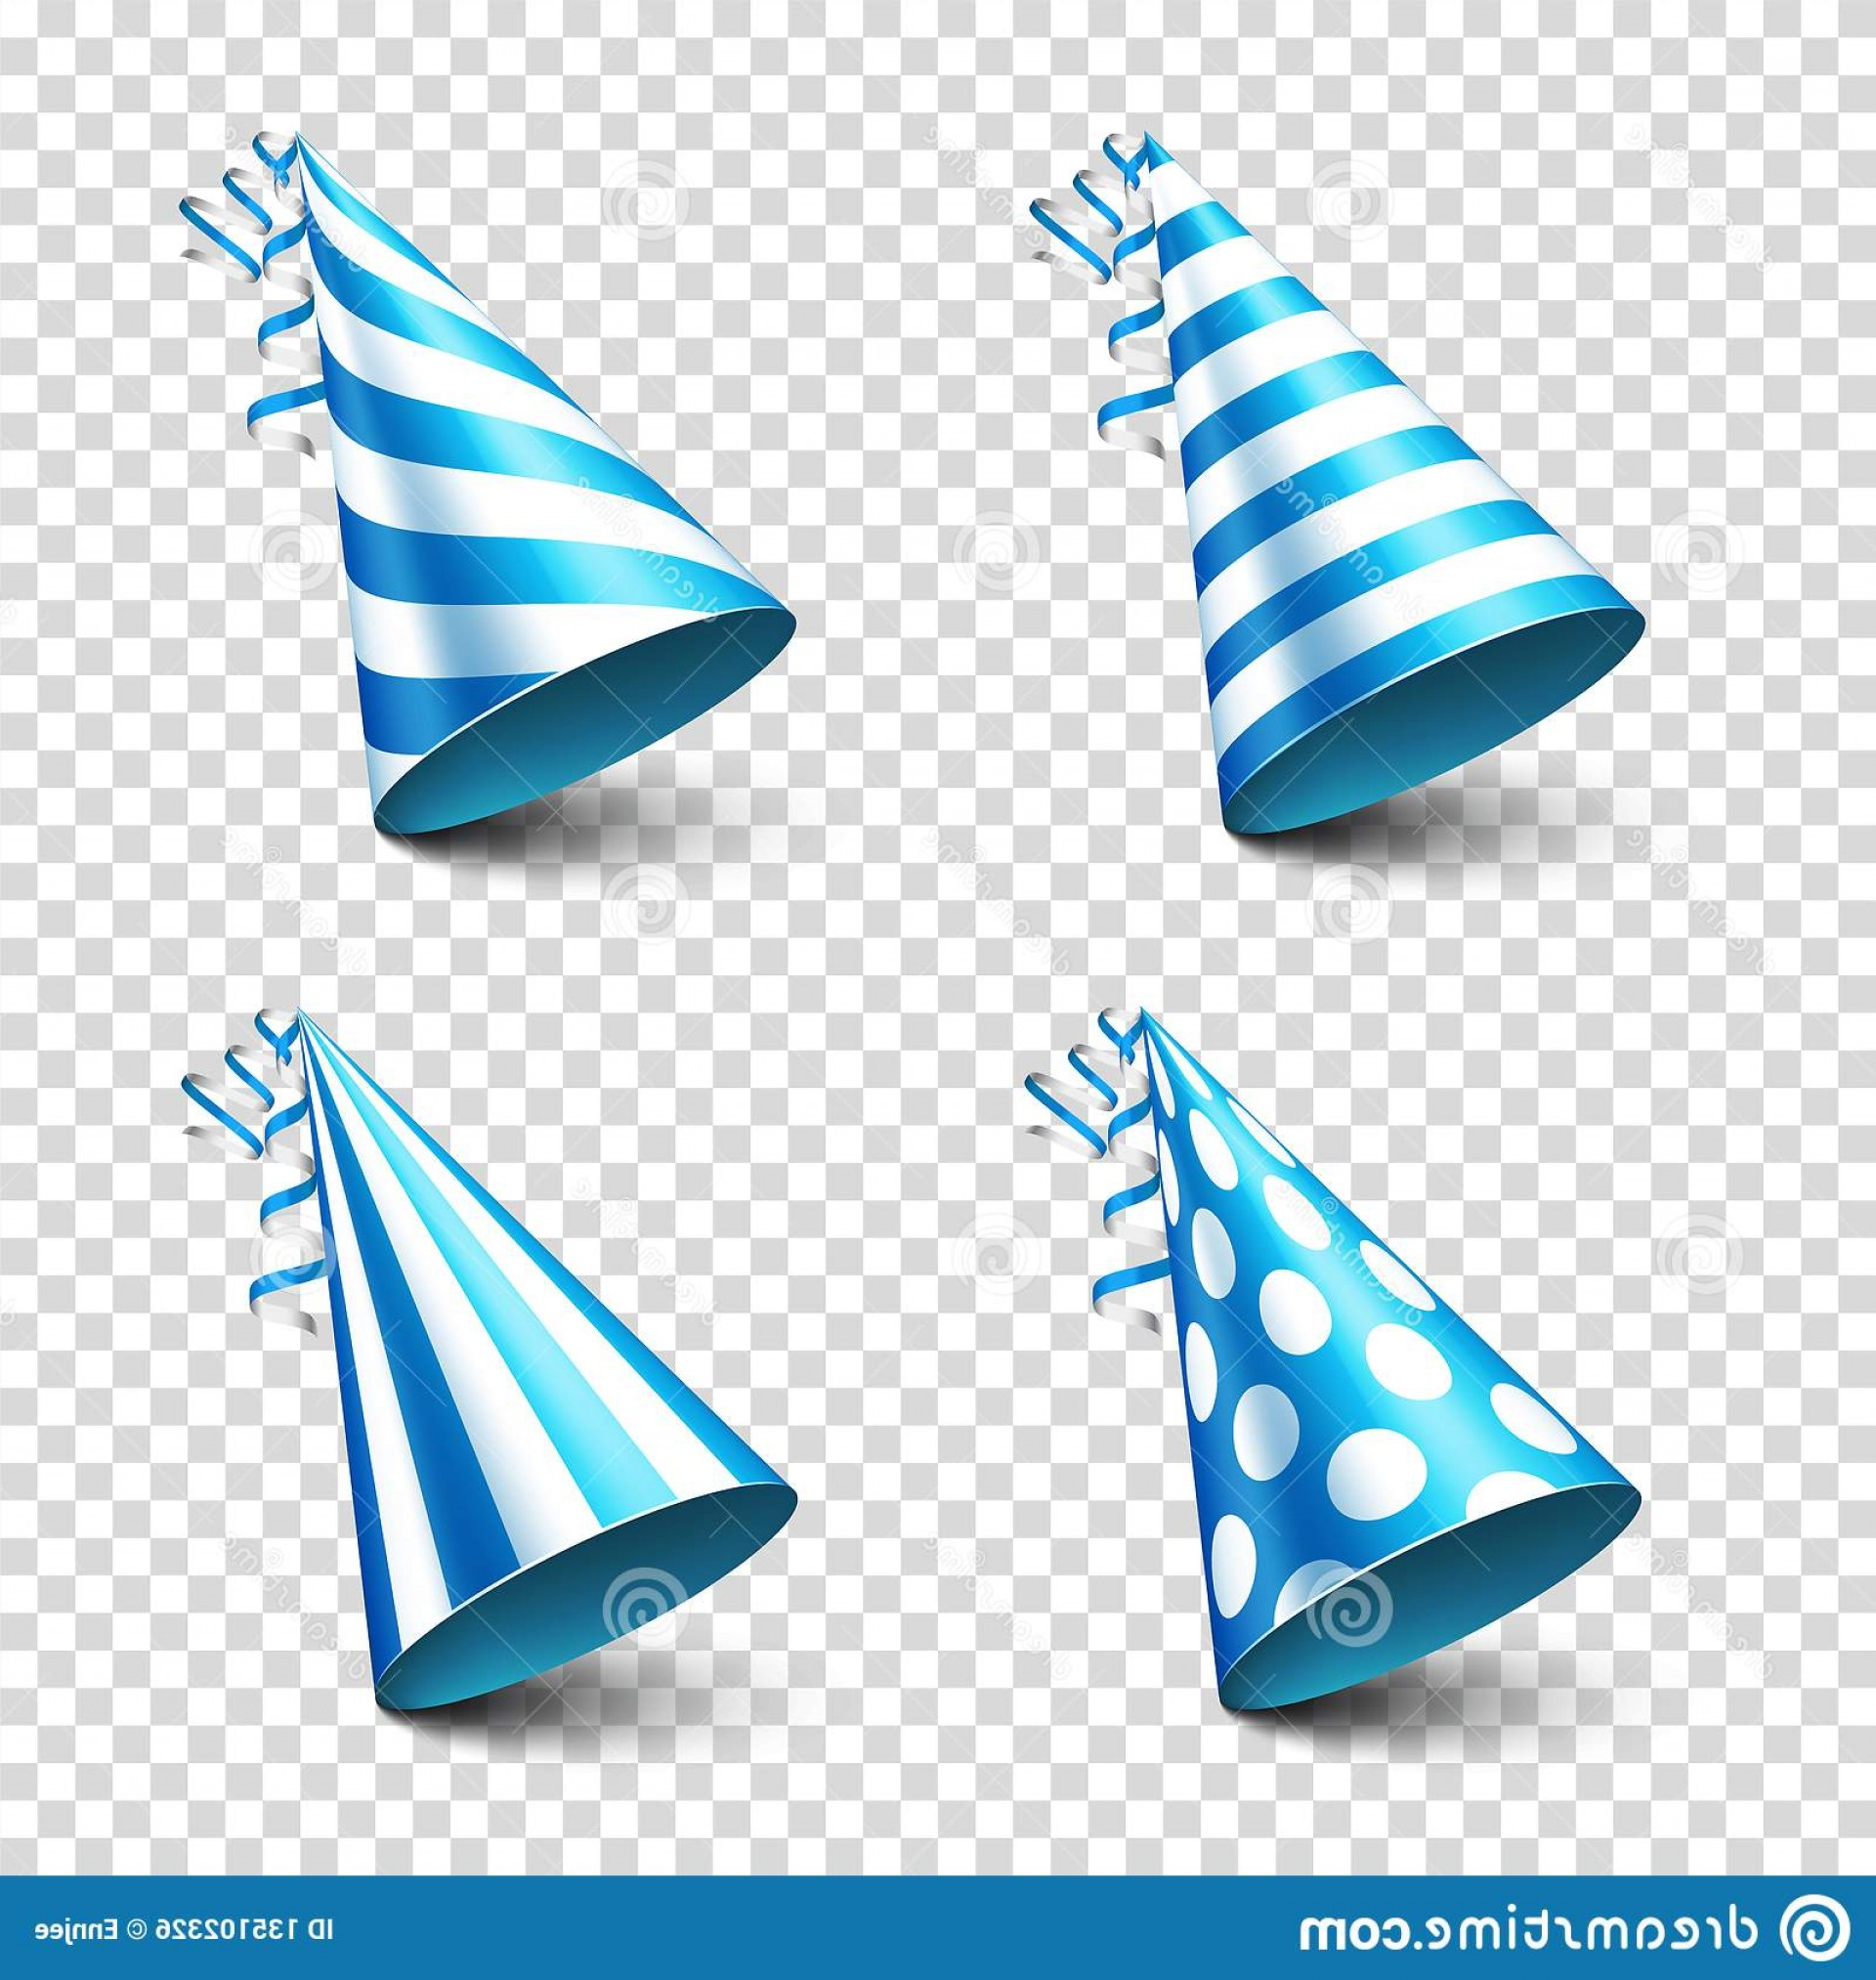 Teal Birthday Hat Vector: Party Shiny Hat Ribbon Holiday Decoration Celebration Birthday Vector Illustration Transparent Background Set Image